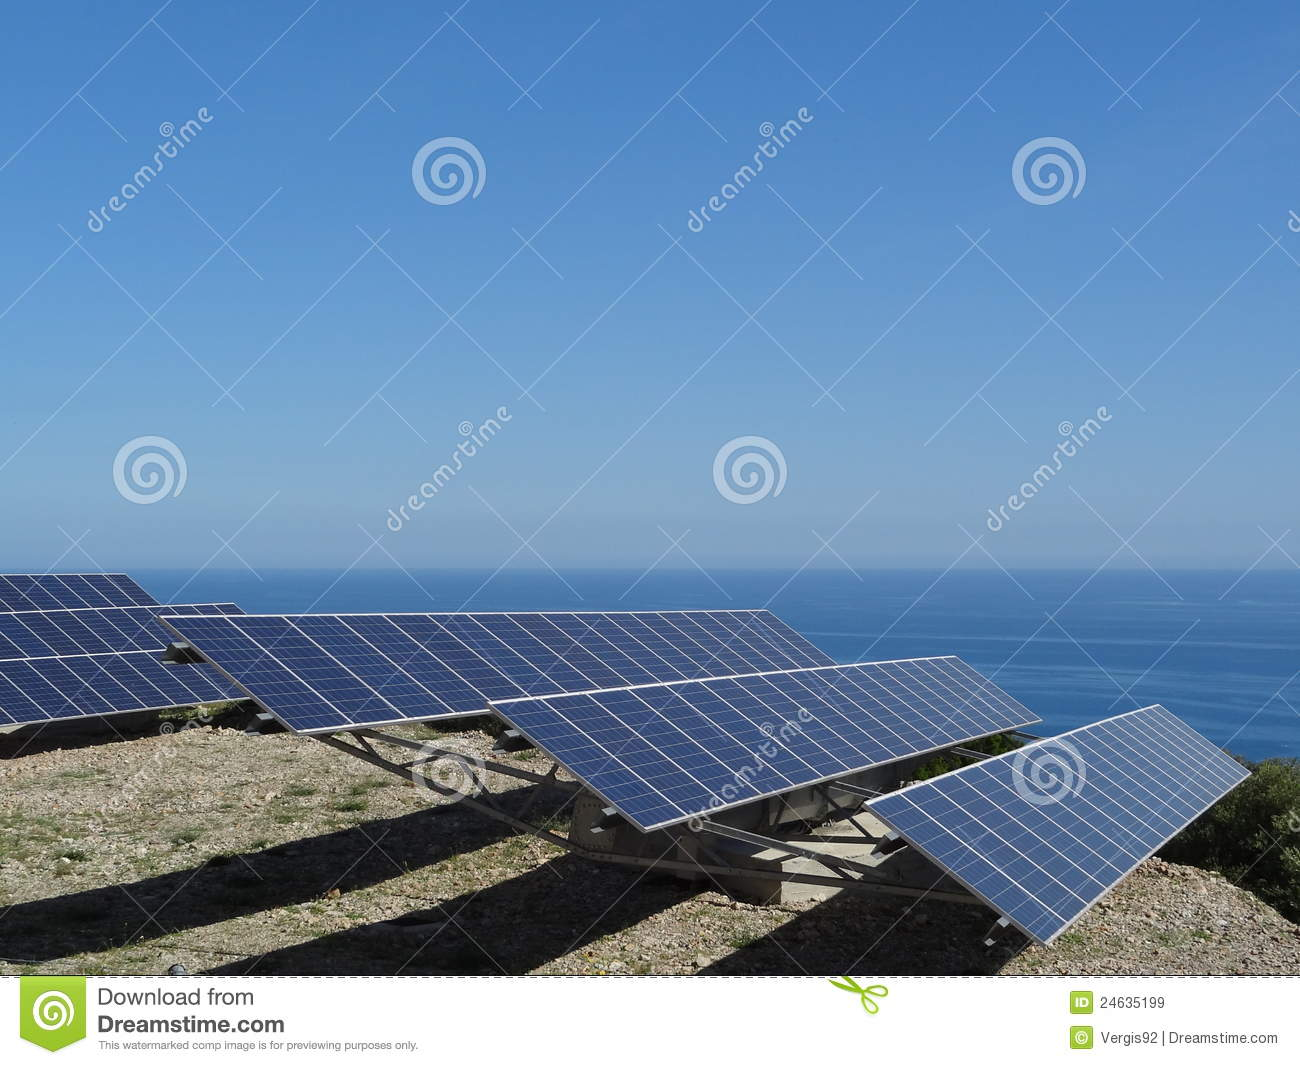 Solar panels by sea stock image. Image of photovoltaic ...